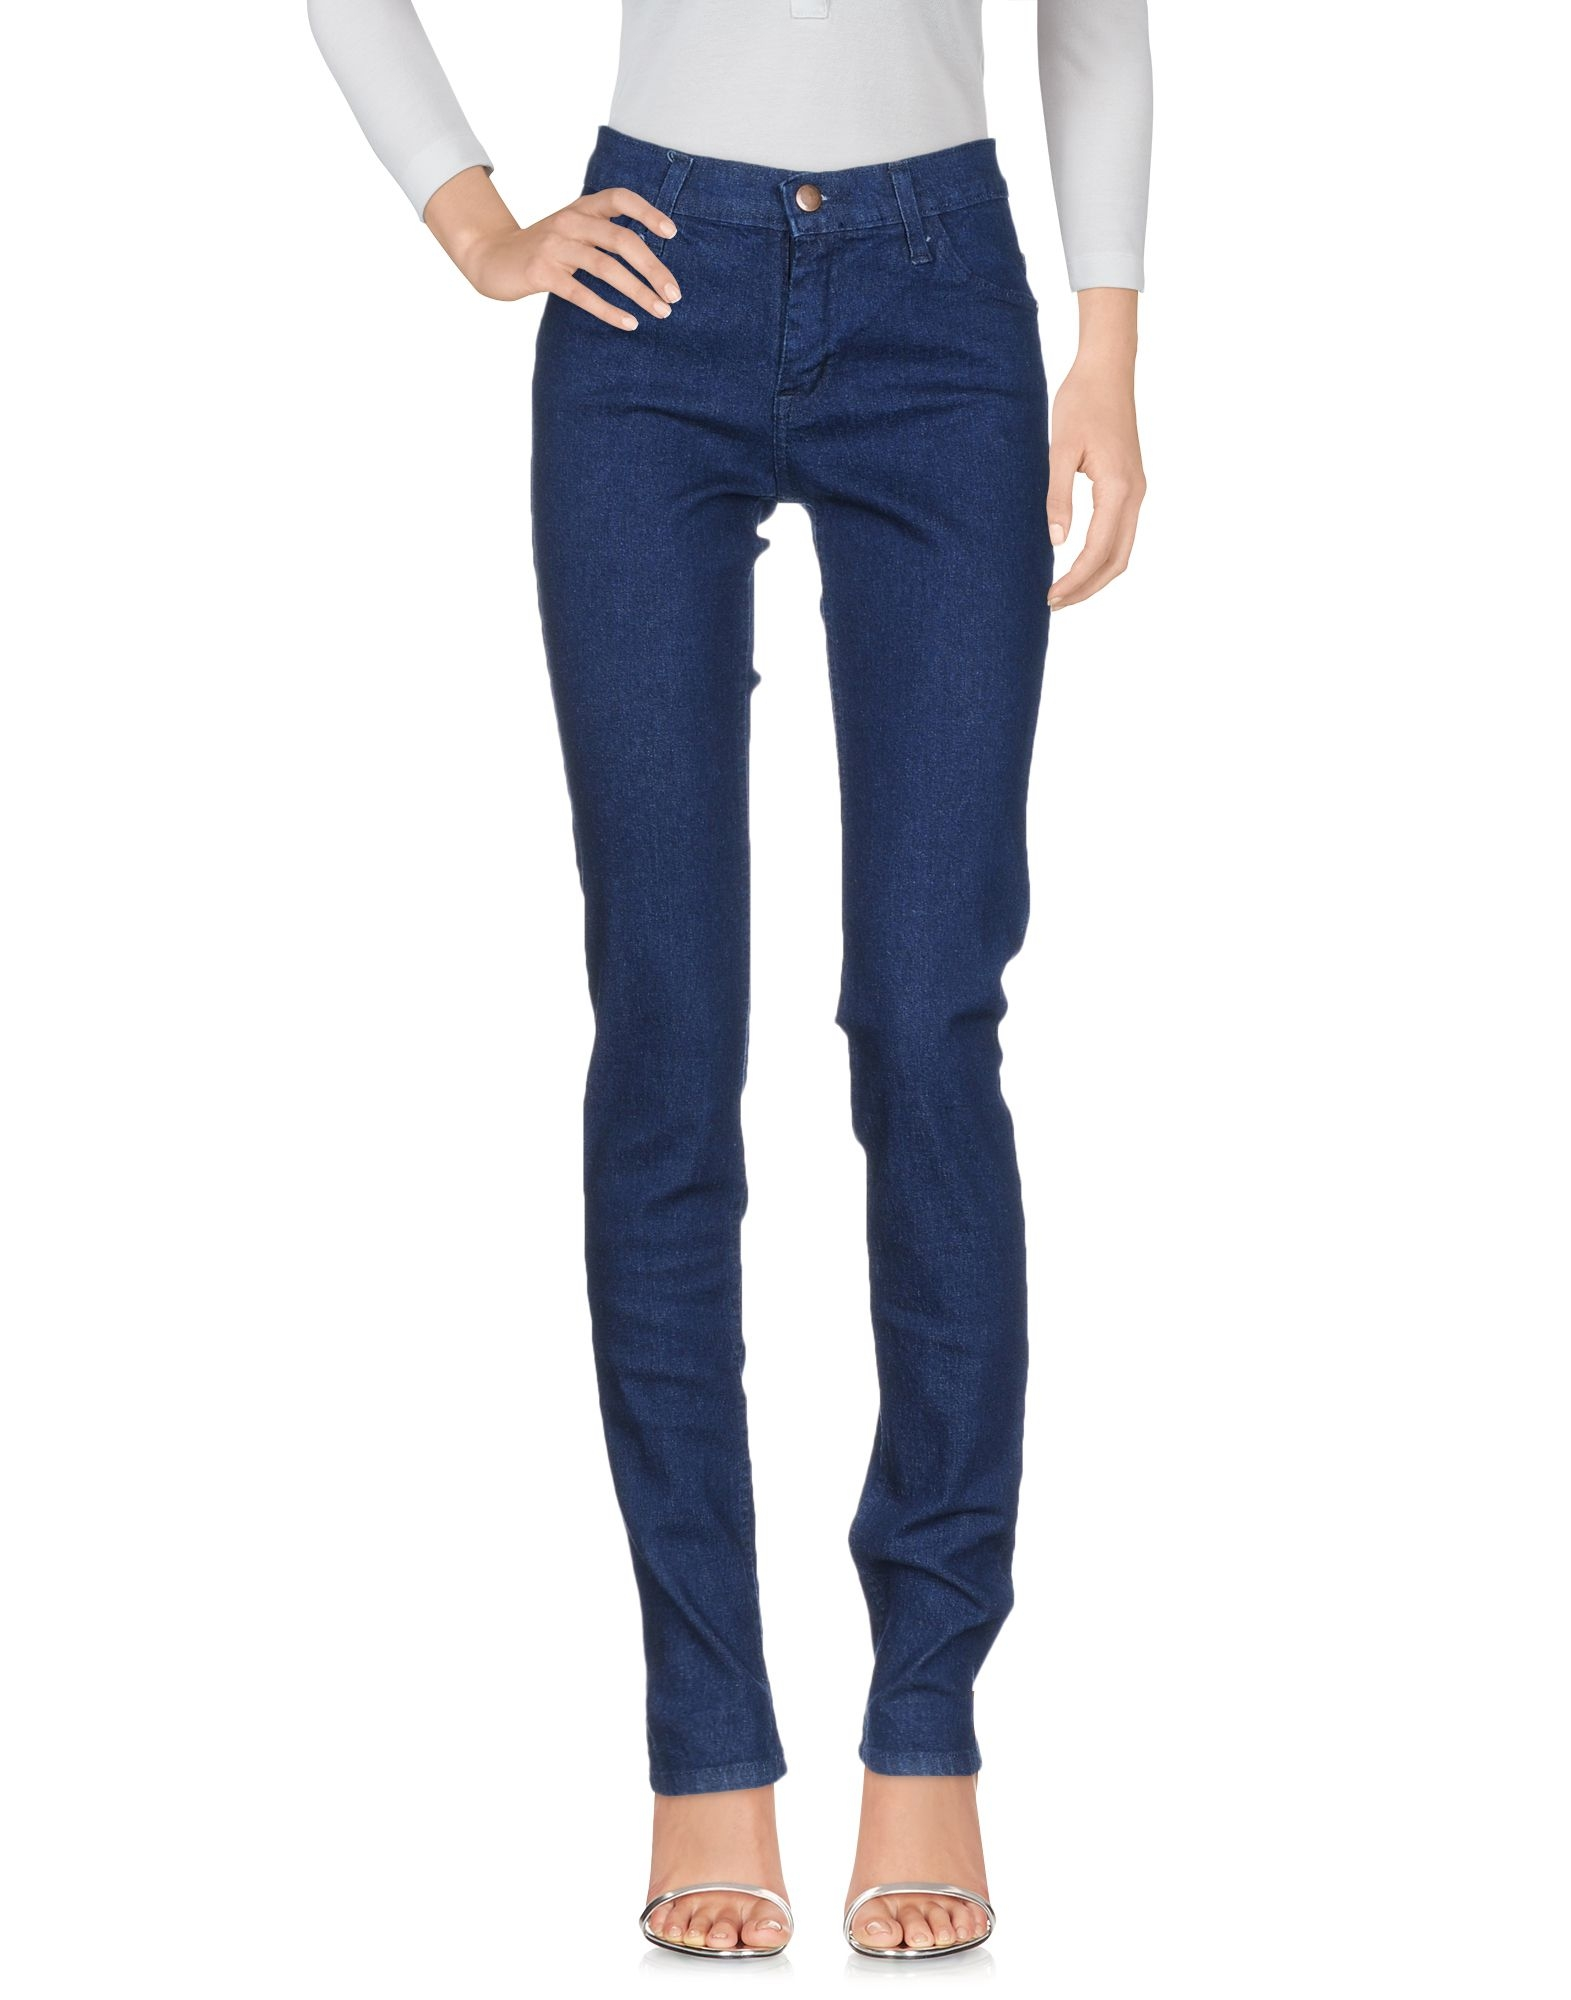 COMPAÑIA FANTASTICA DENIM Τζιν